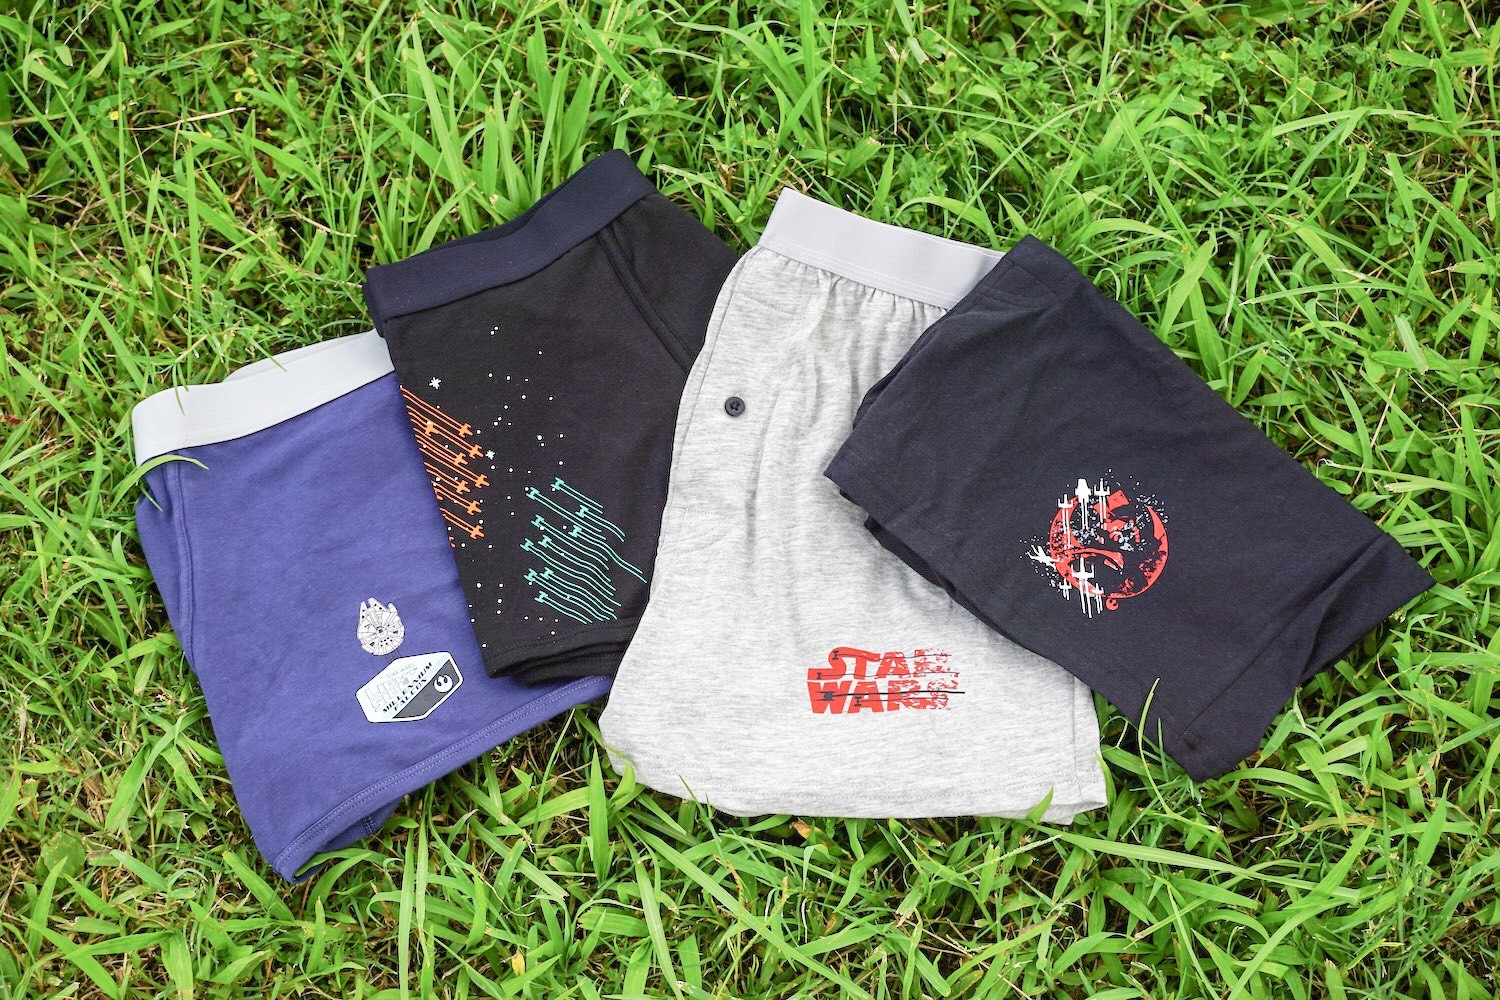 T-shirt, Textile, Outerwear, Shorts, Product, Brand, t shirt, green, t shirt, product, product, grass, outerwear, textile, shorts, brand, pattern